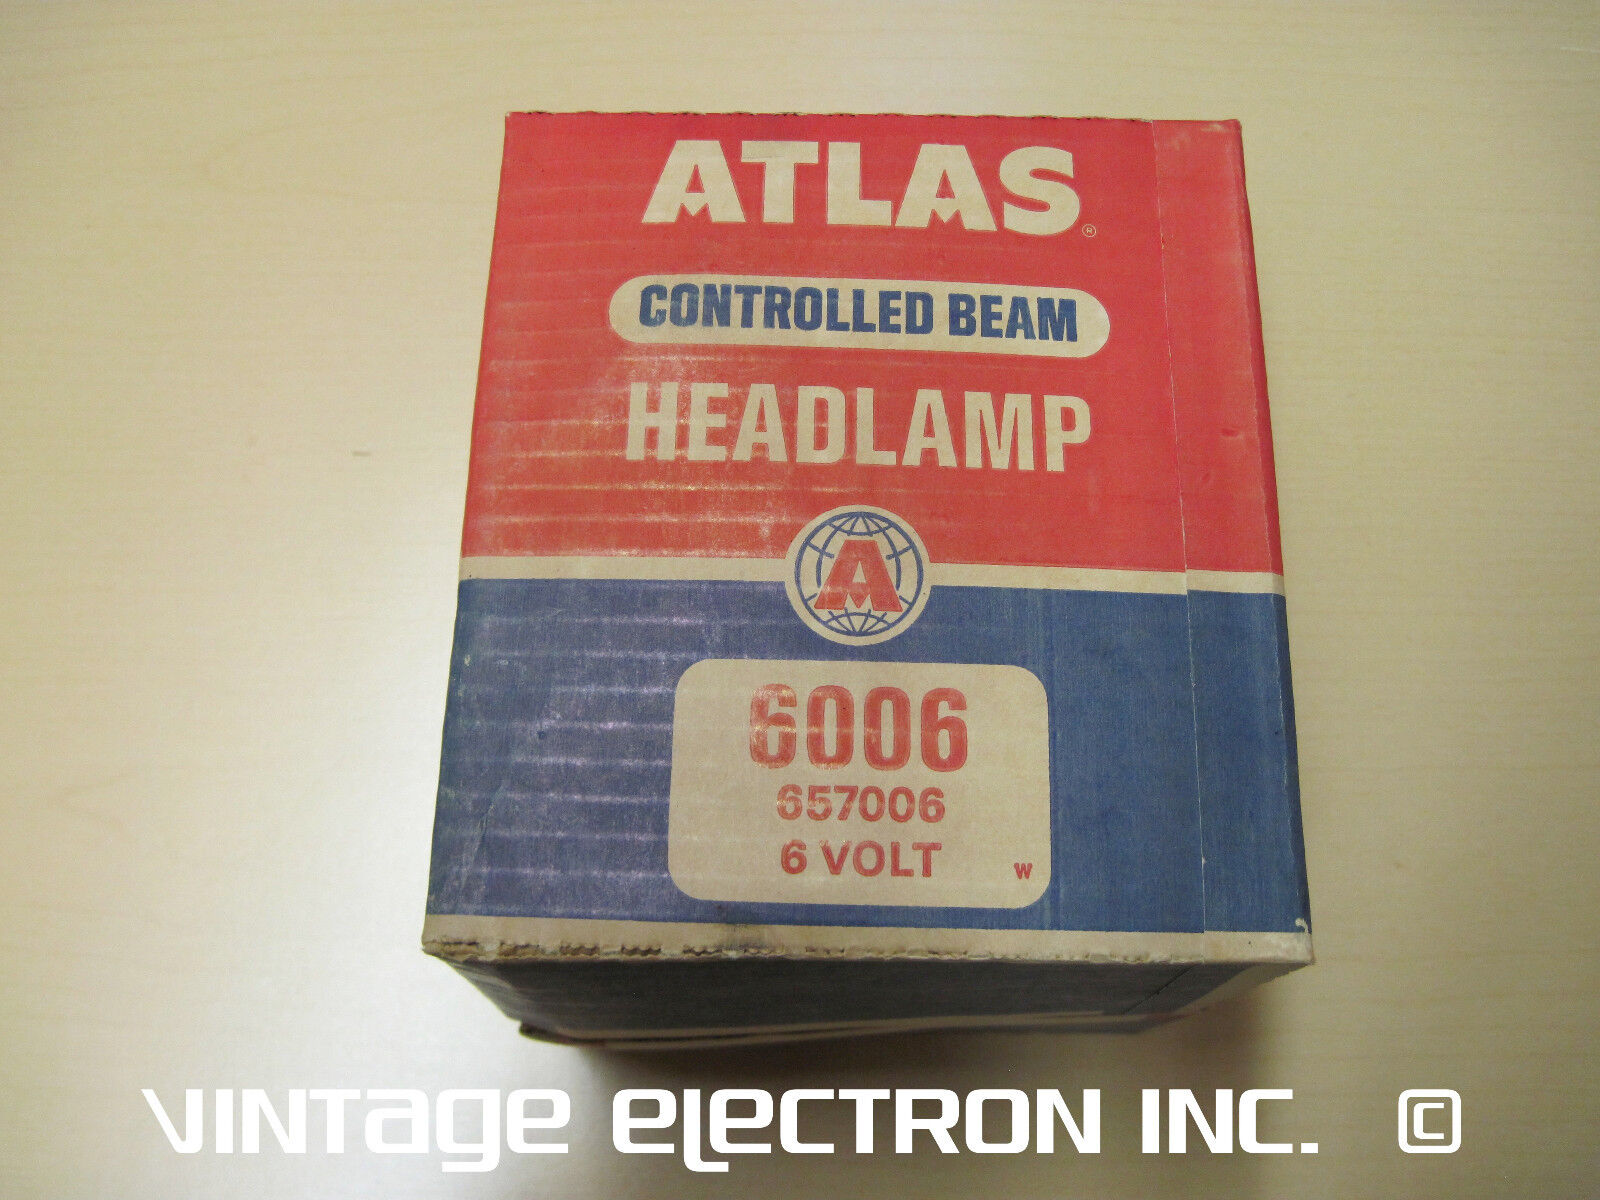 ATLAS 6006 Headlamp - 6 Volt (6V) - $29.95/ea, FREE SHIPPING, MADE IN USA